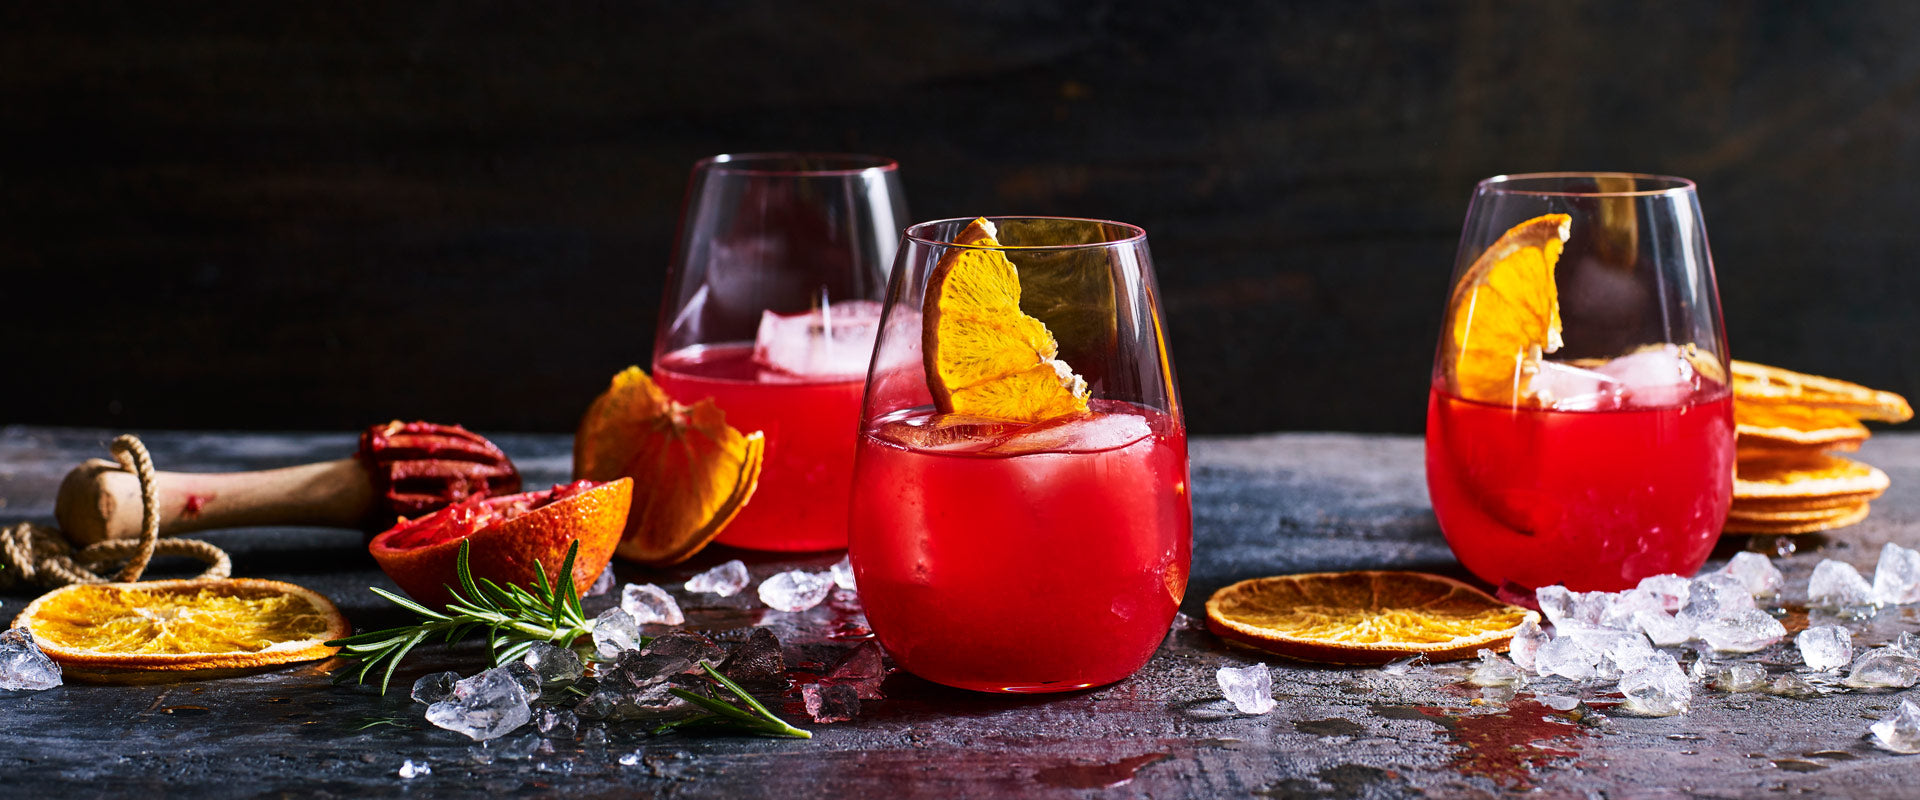 blood orange & rosemary cocktail